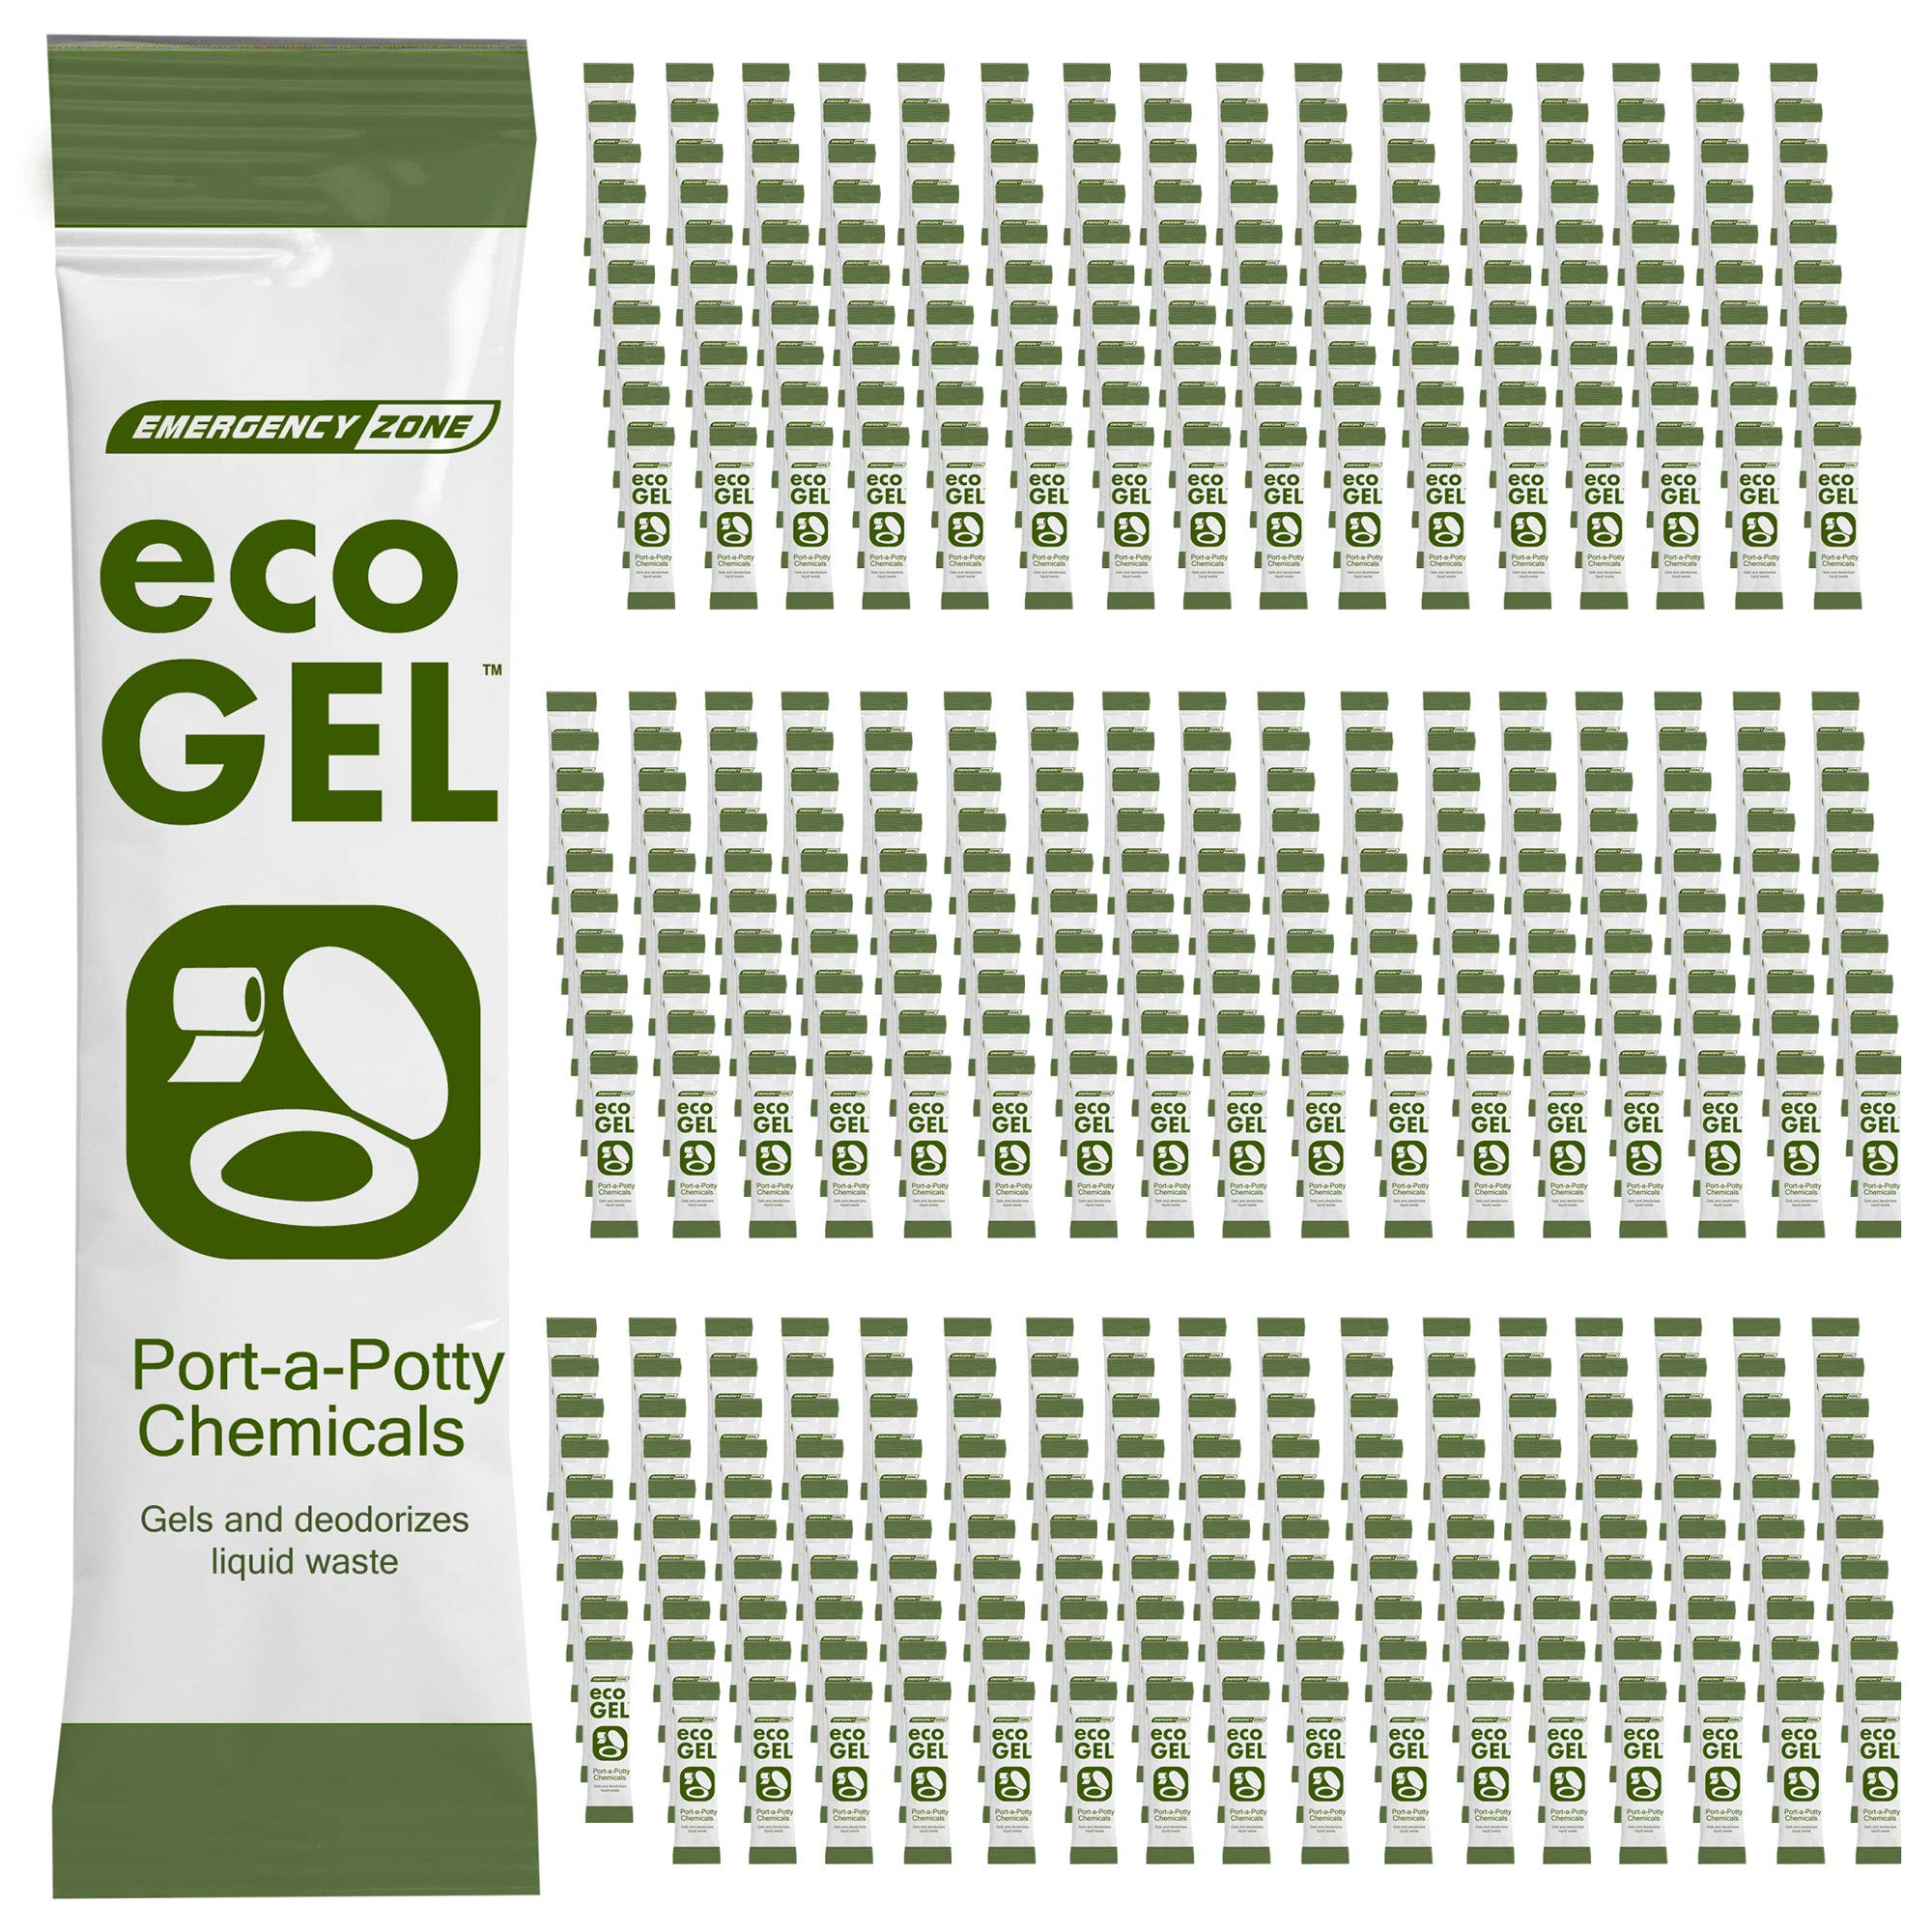 Eco Gel Port-A-Potty and Emergency Toilet Chemicals, Eco-Friendly Liquid Waste Gelling and Deodorizing Powder. Available in Single, 2, 3, 4, 30, and Case Packs (Bulk 500 Stick Case)